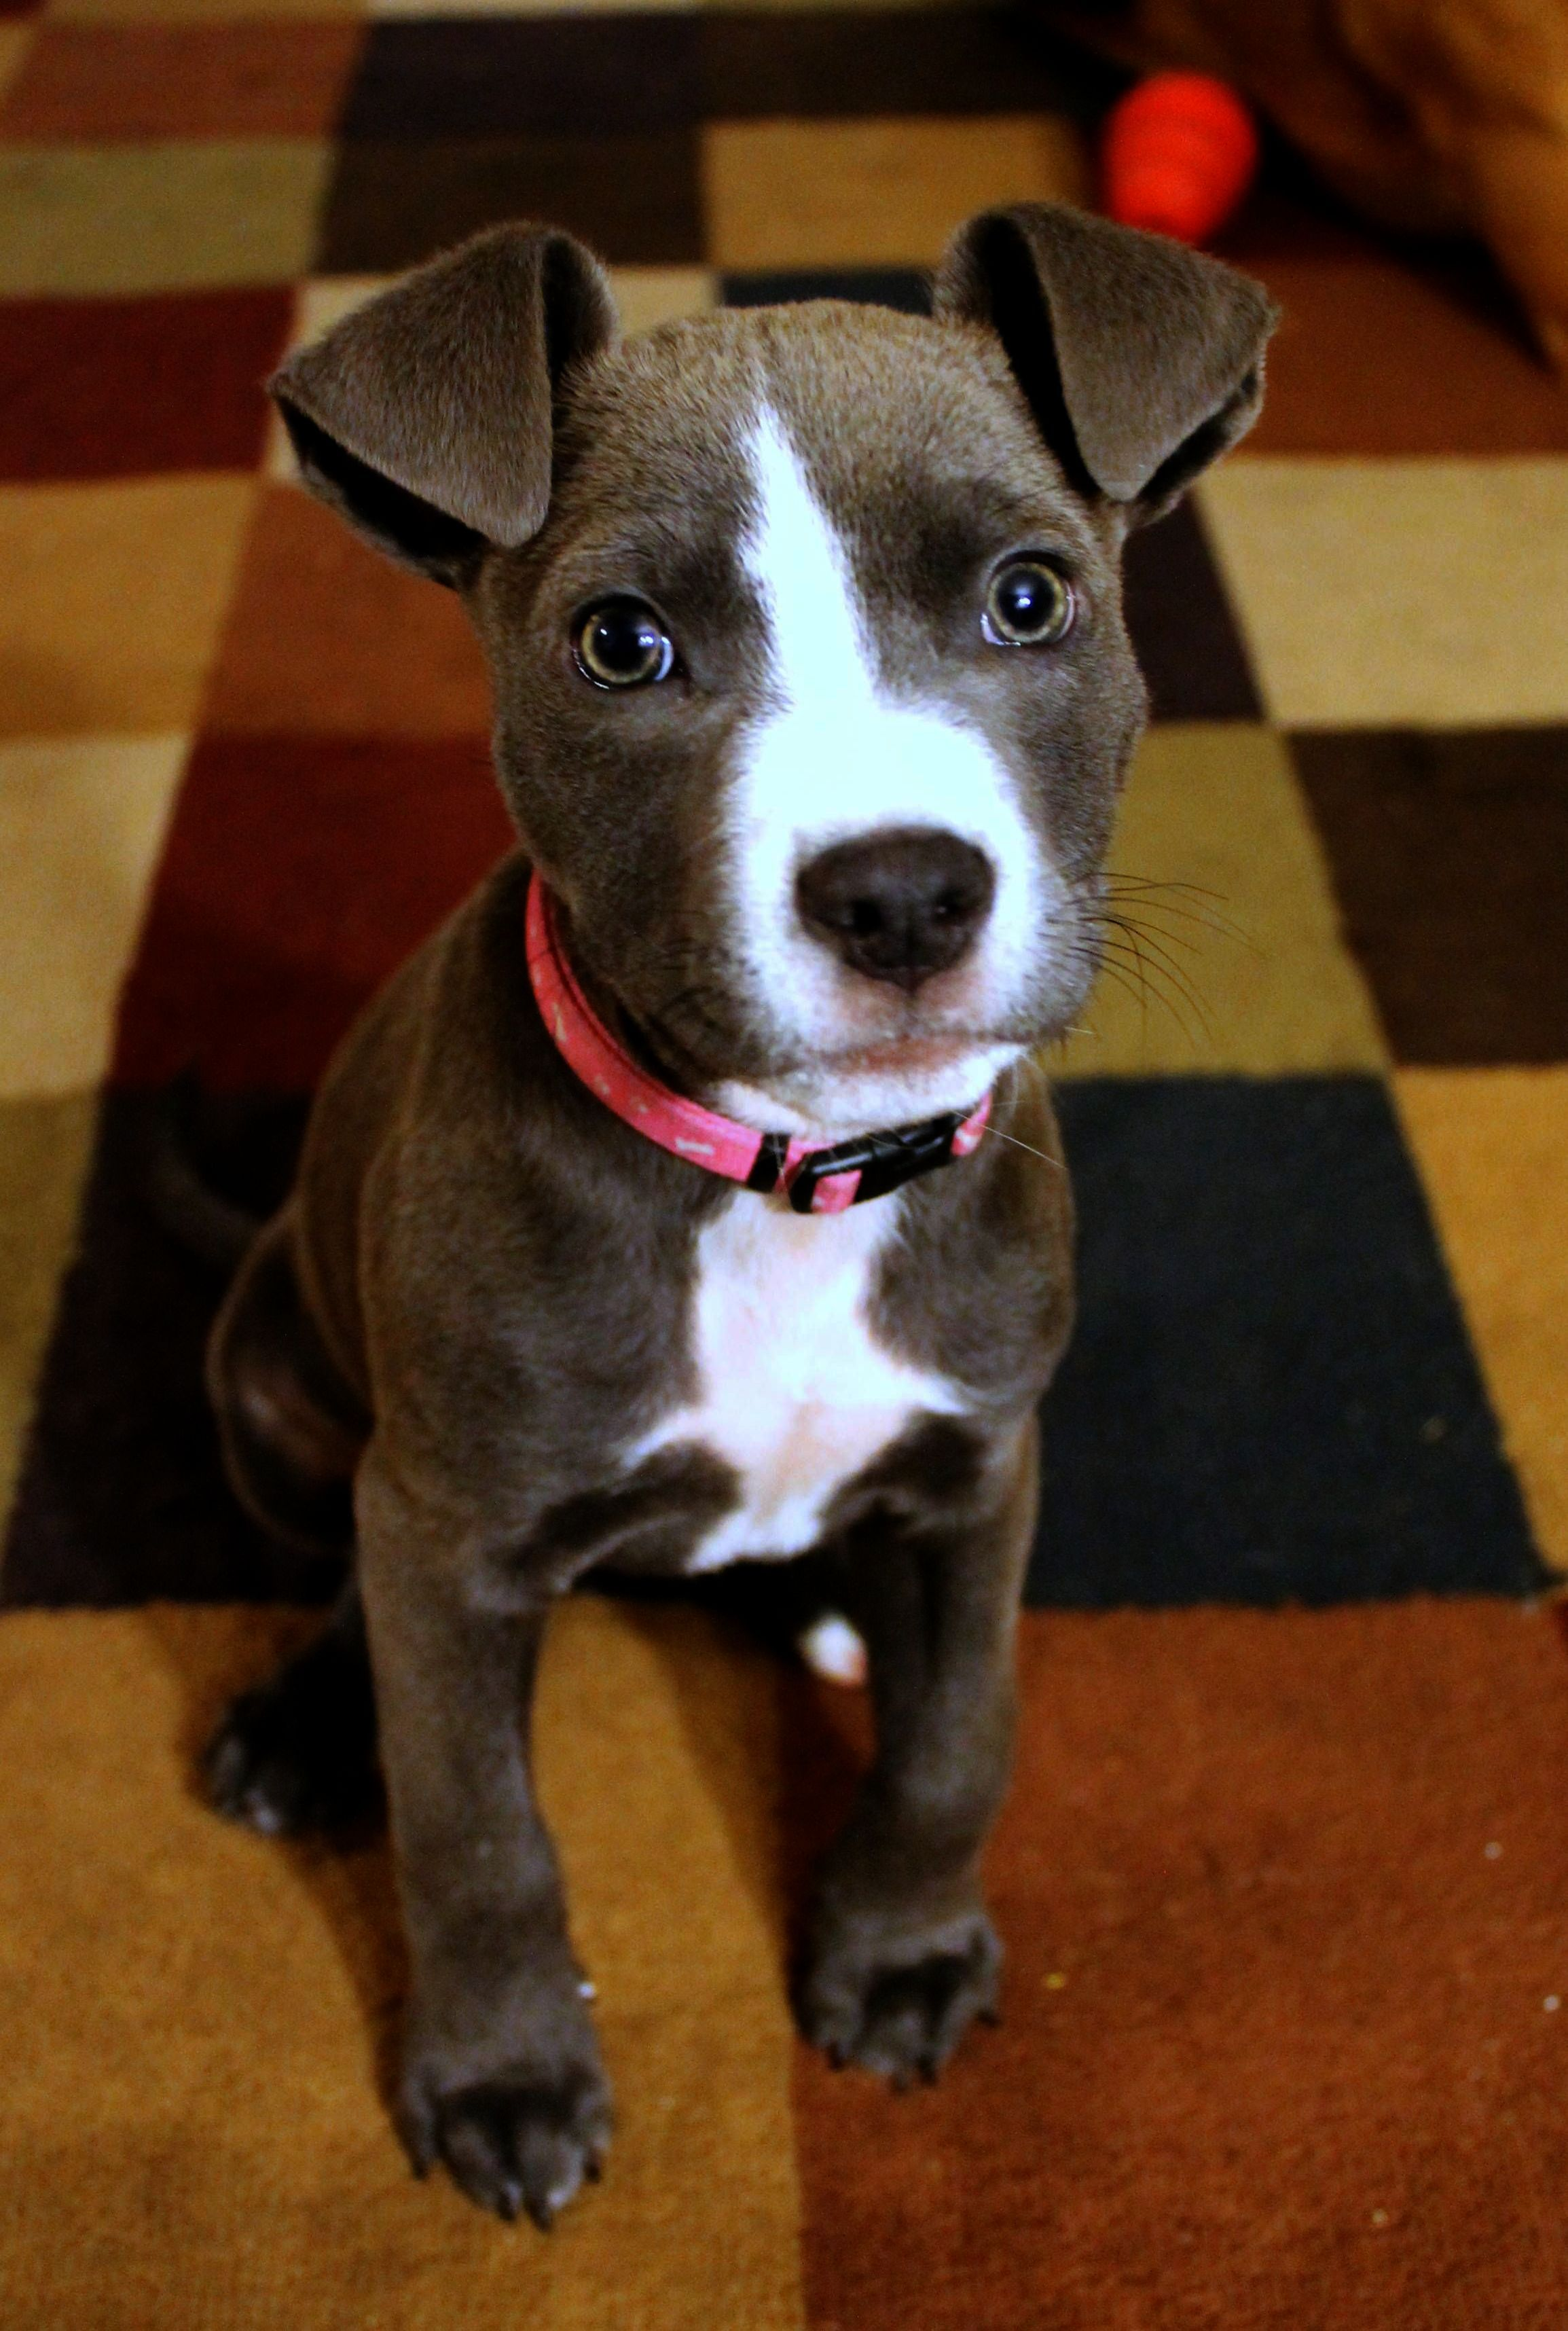 Get some > Pitbull Mix Puppies Near Me get (With images